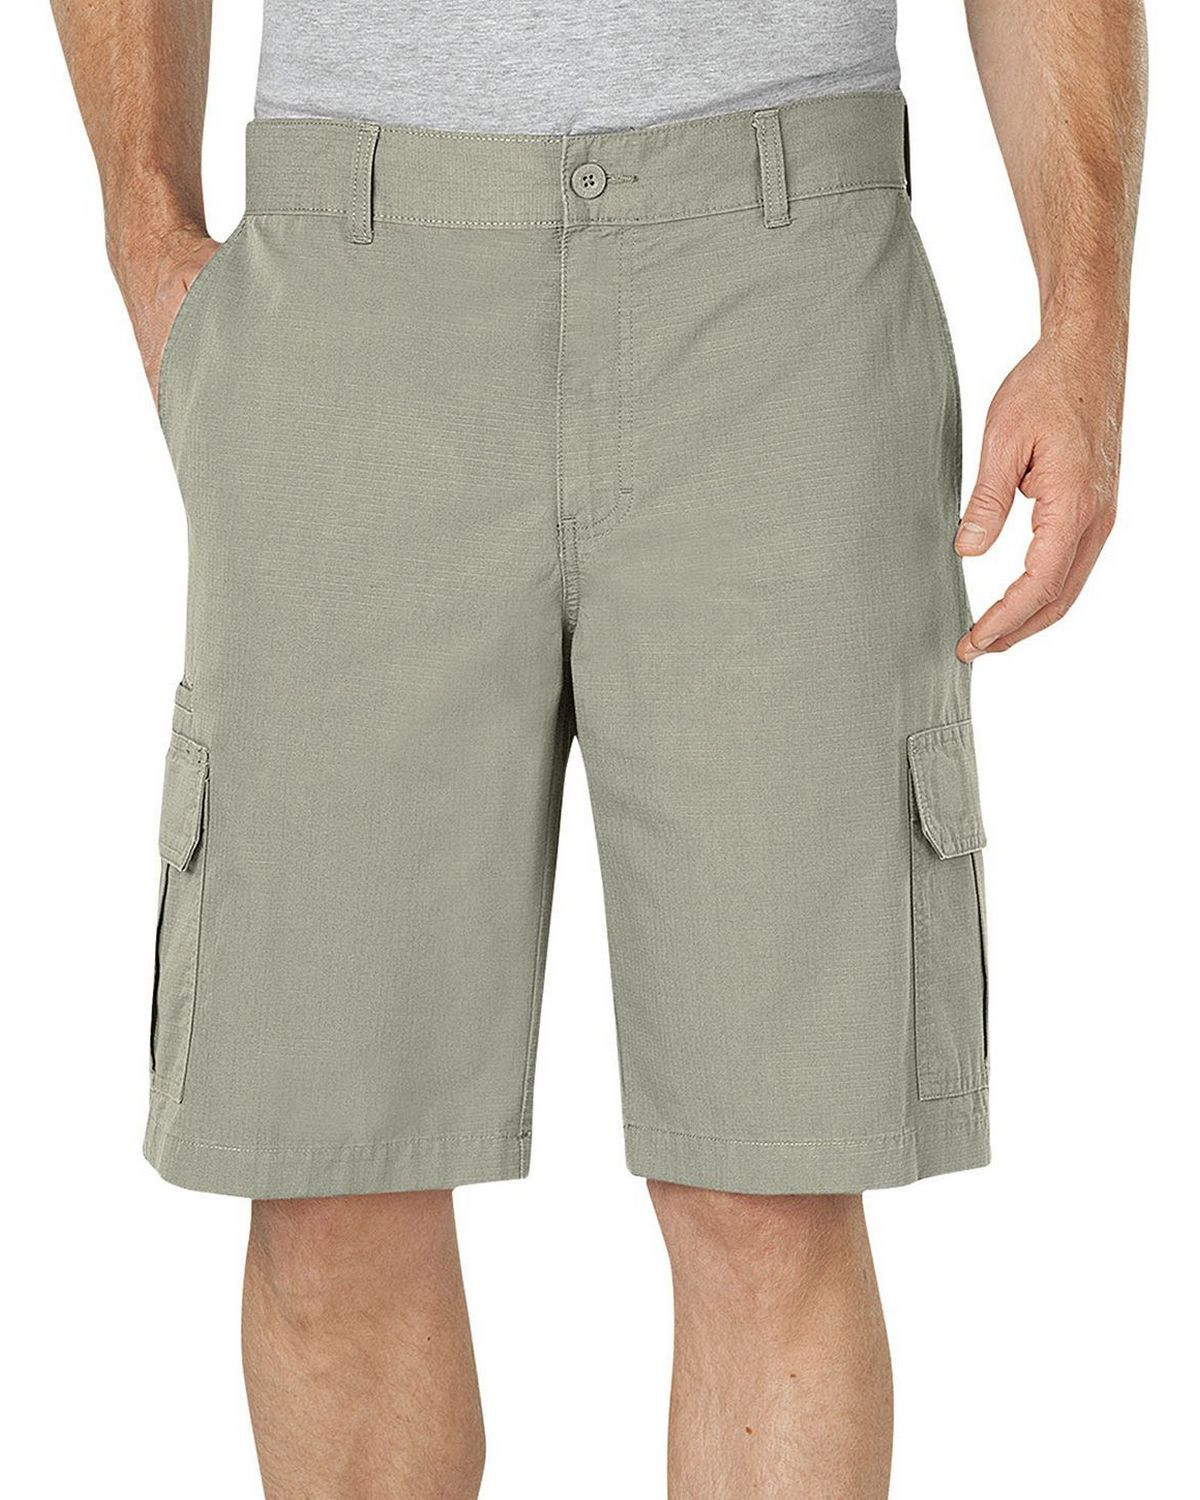 481f2a88ad Dickies WR351 Mens 11 Relaxed Fit Lightweight Ripstop Cargo Short